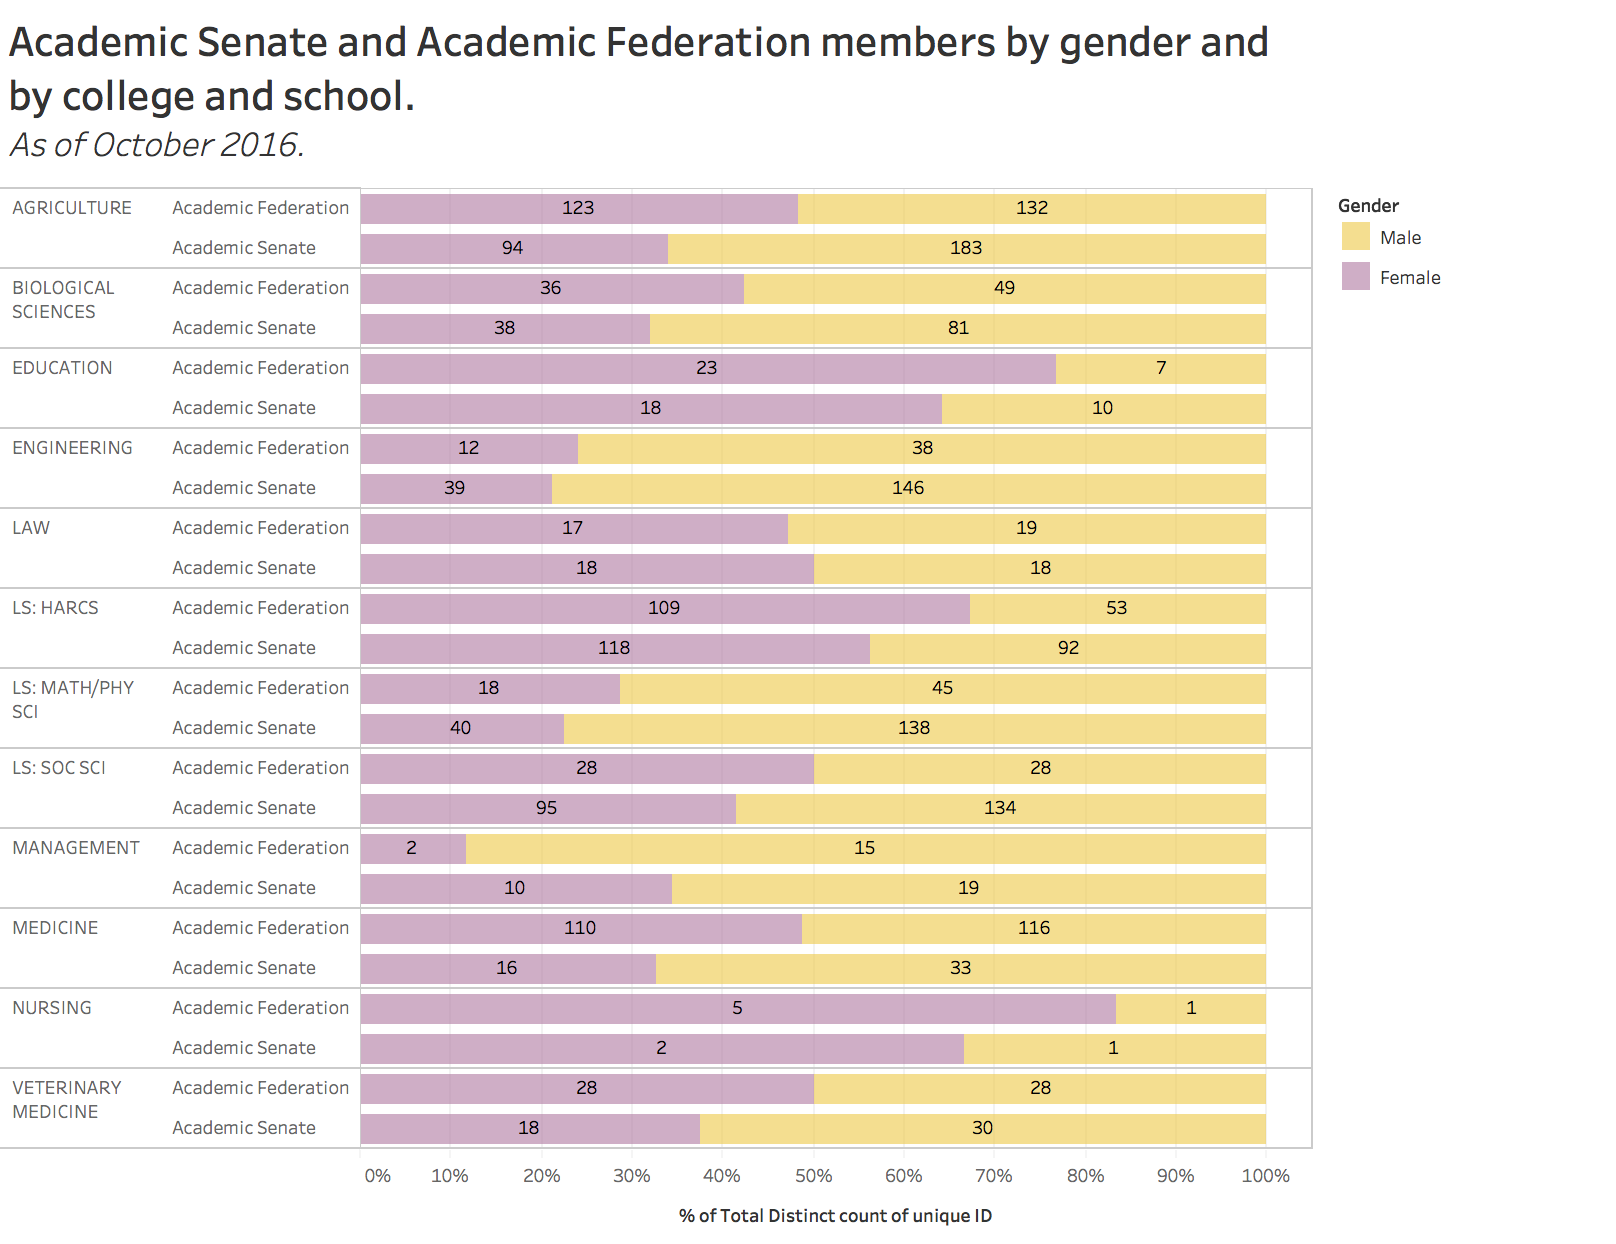 Academic senate and academic federation members by gender and by college and school